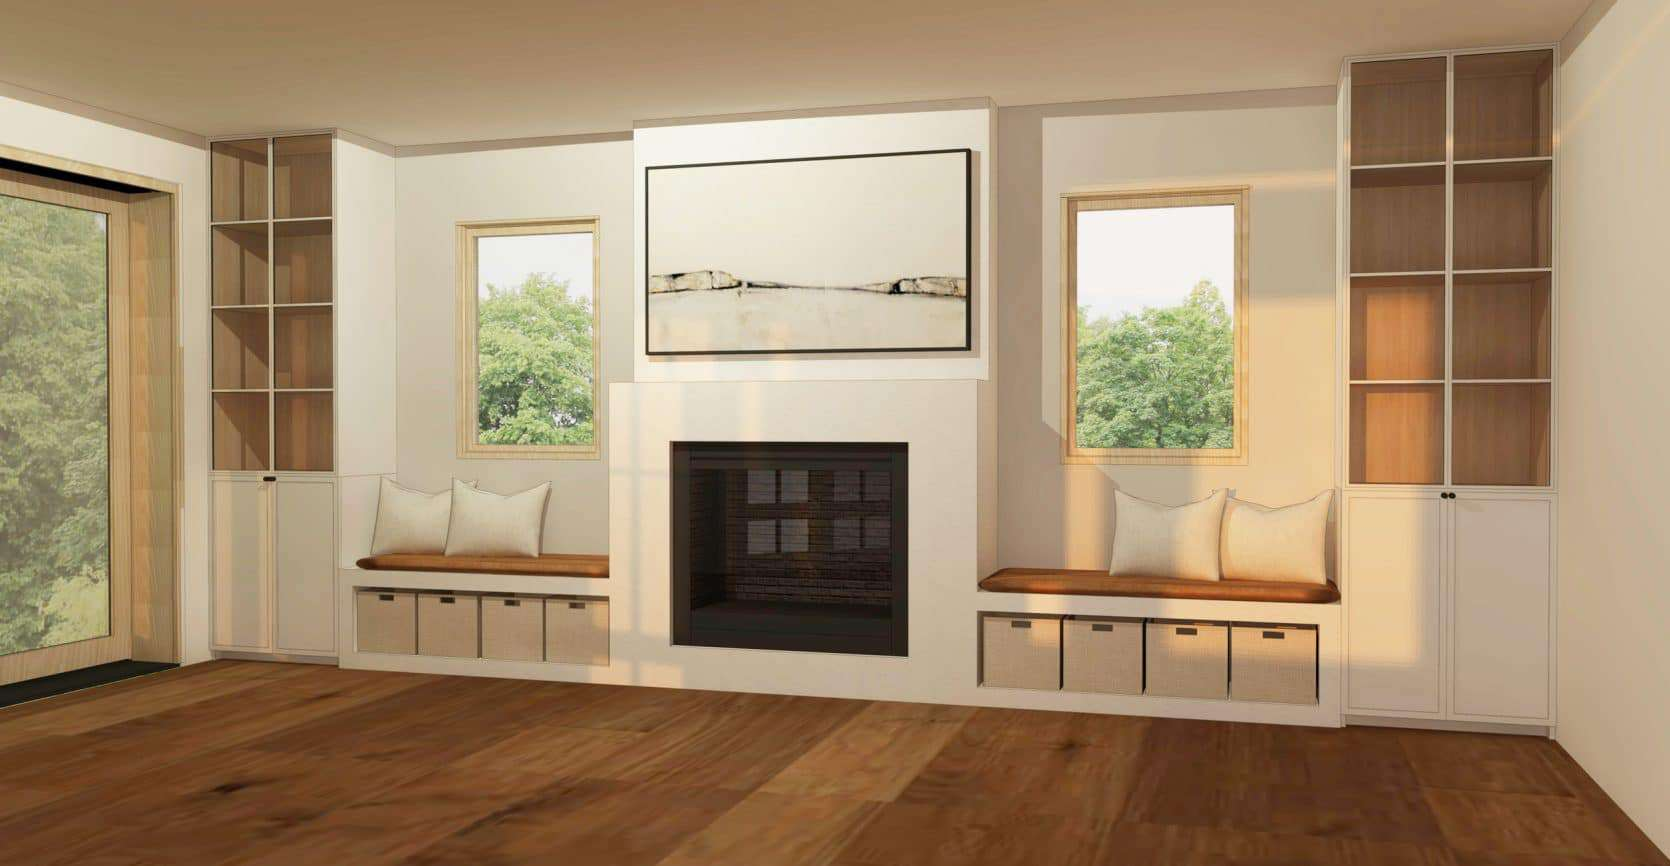 Emily Henderson Mountain Fixer Upper Family Room Fireplace Final Design White Baskets